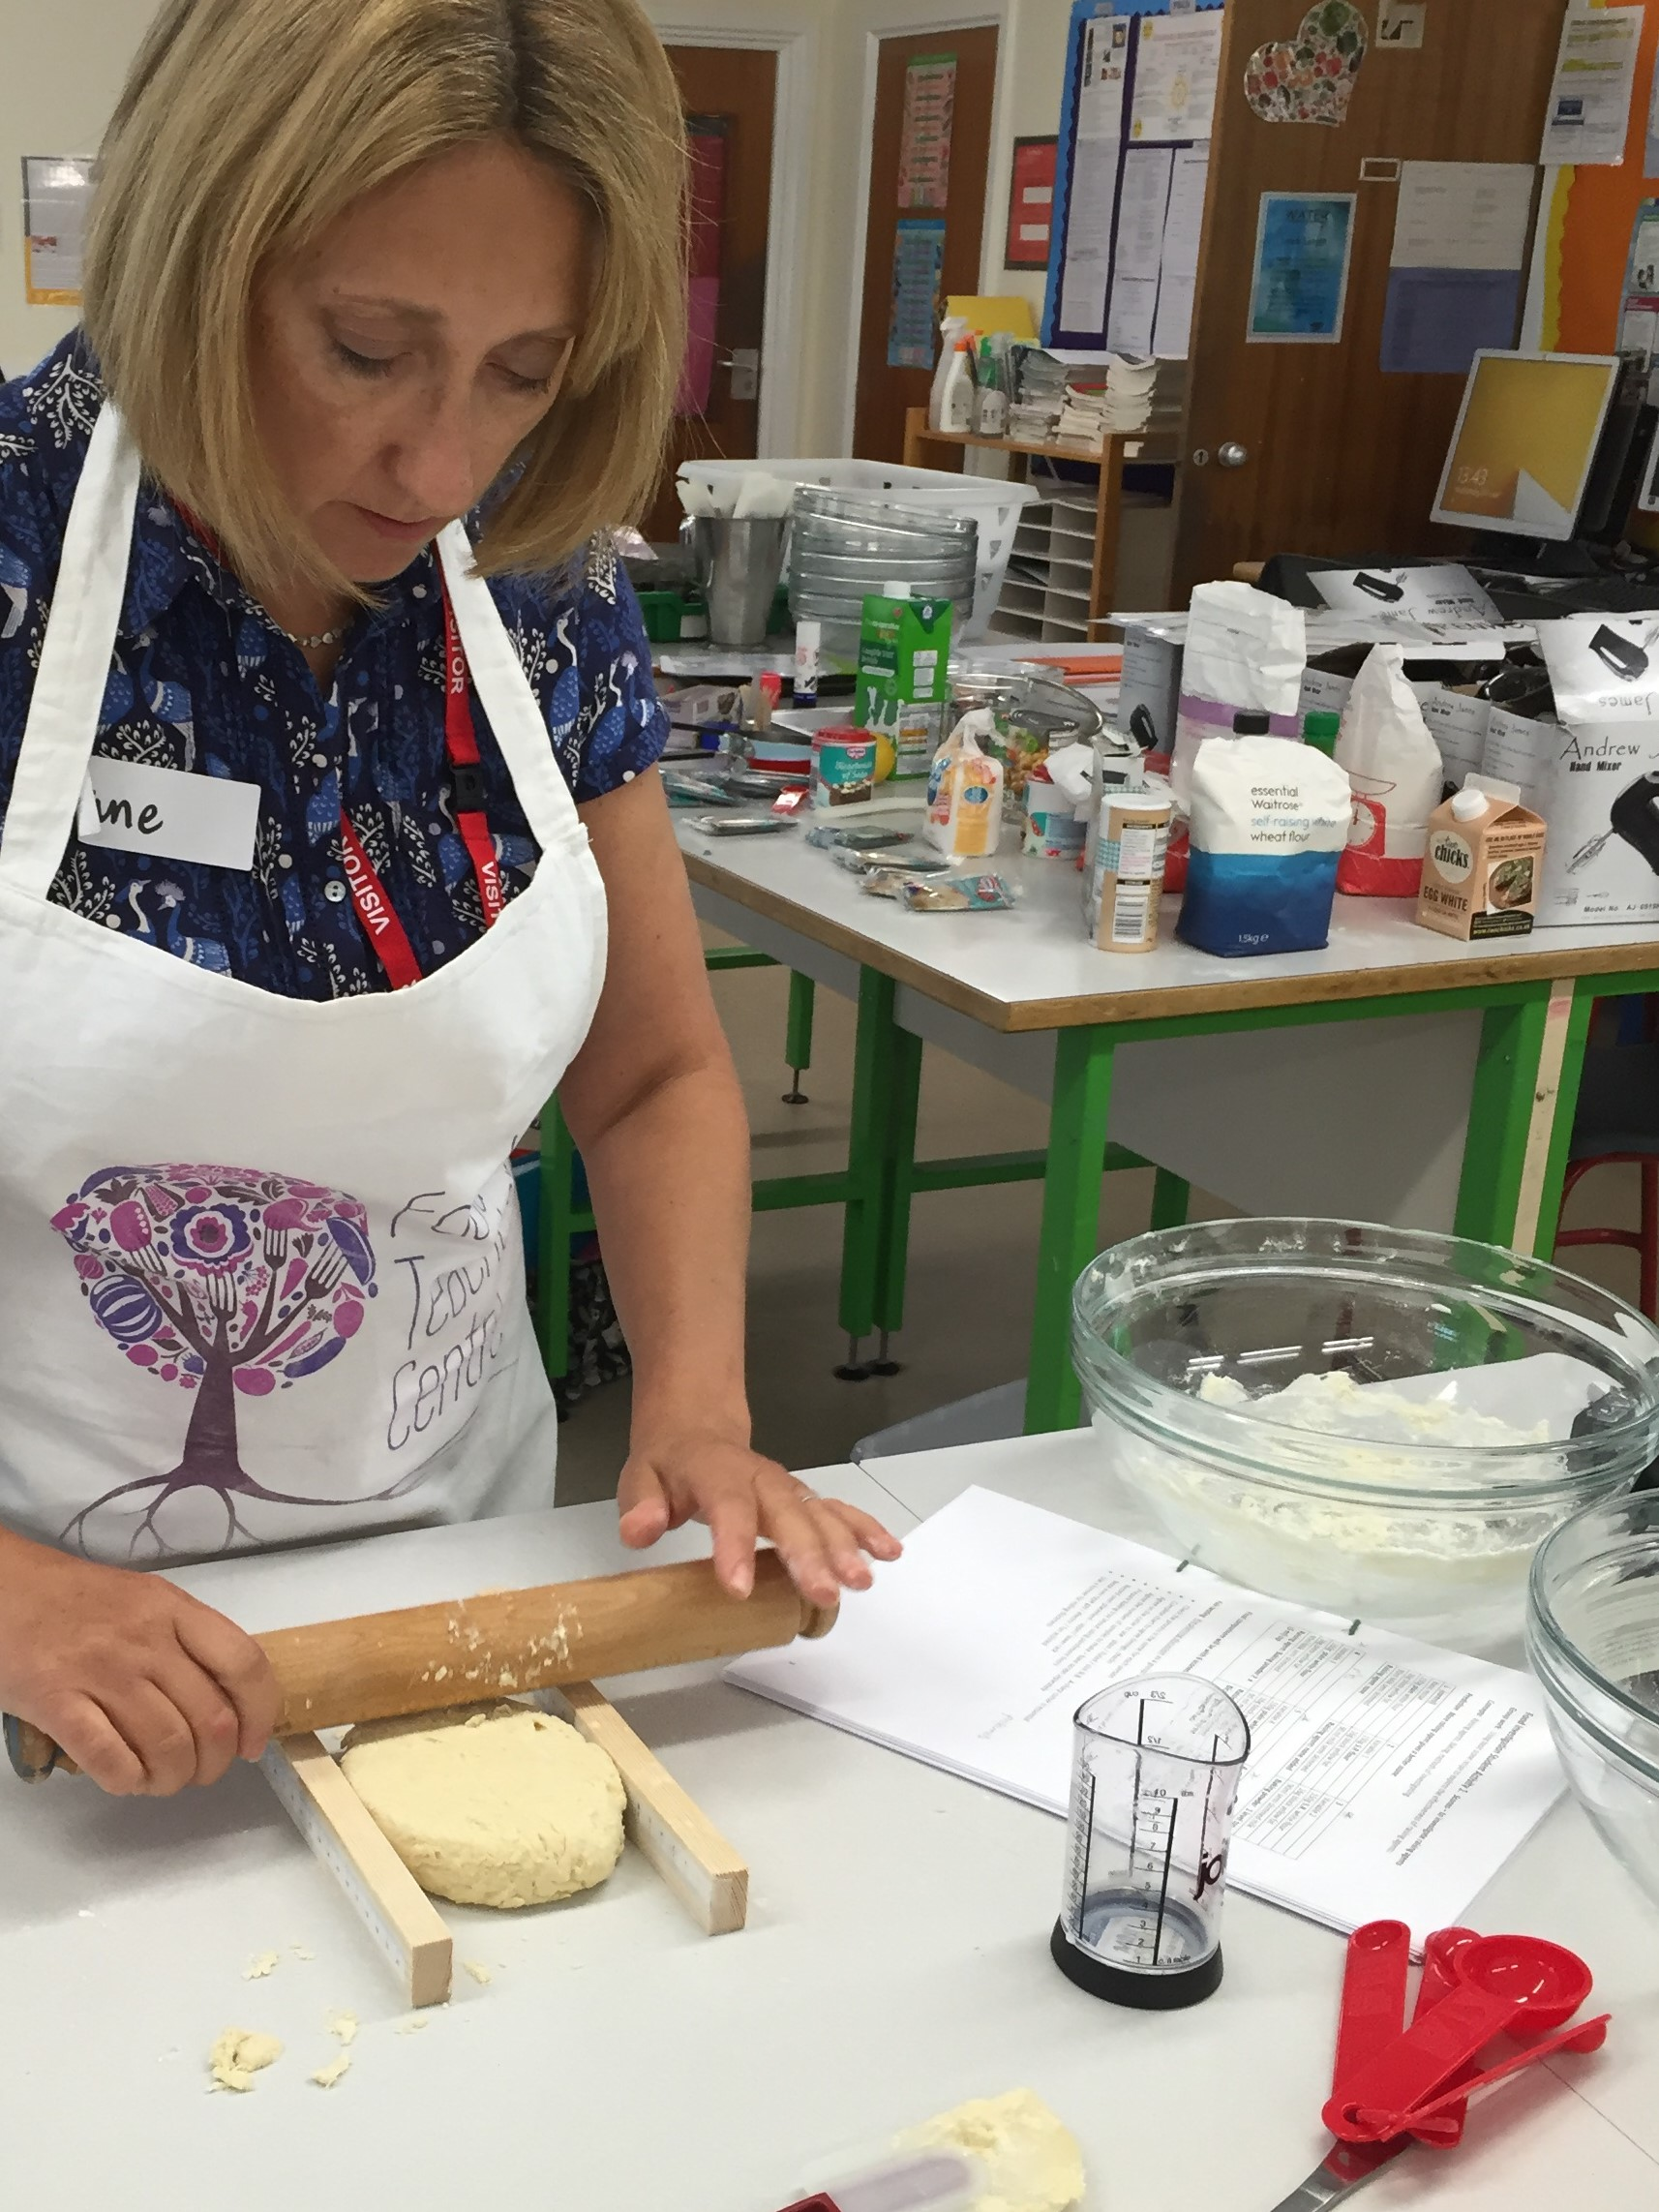 Gcse Investigate Food 2 Uel Registration Thu 15 Jun